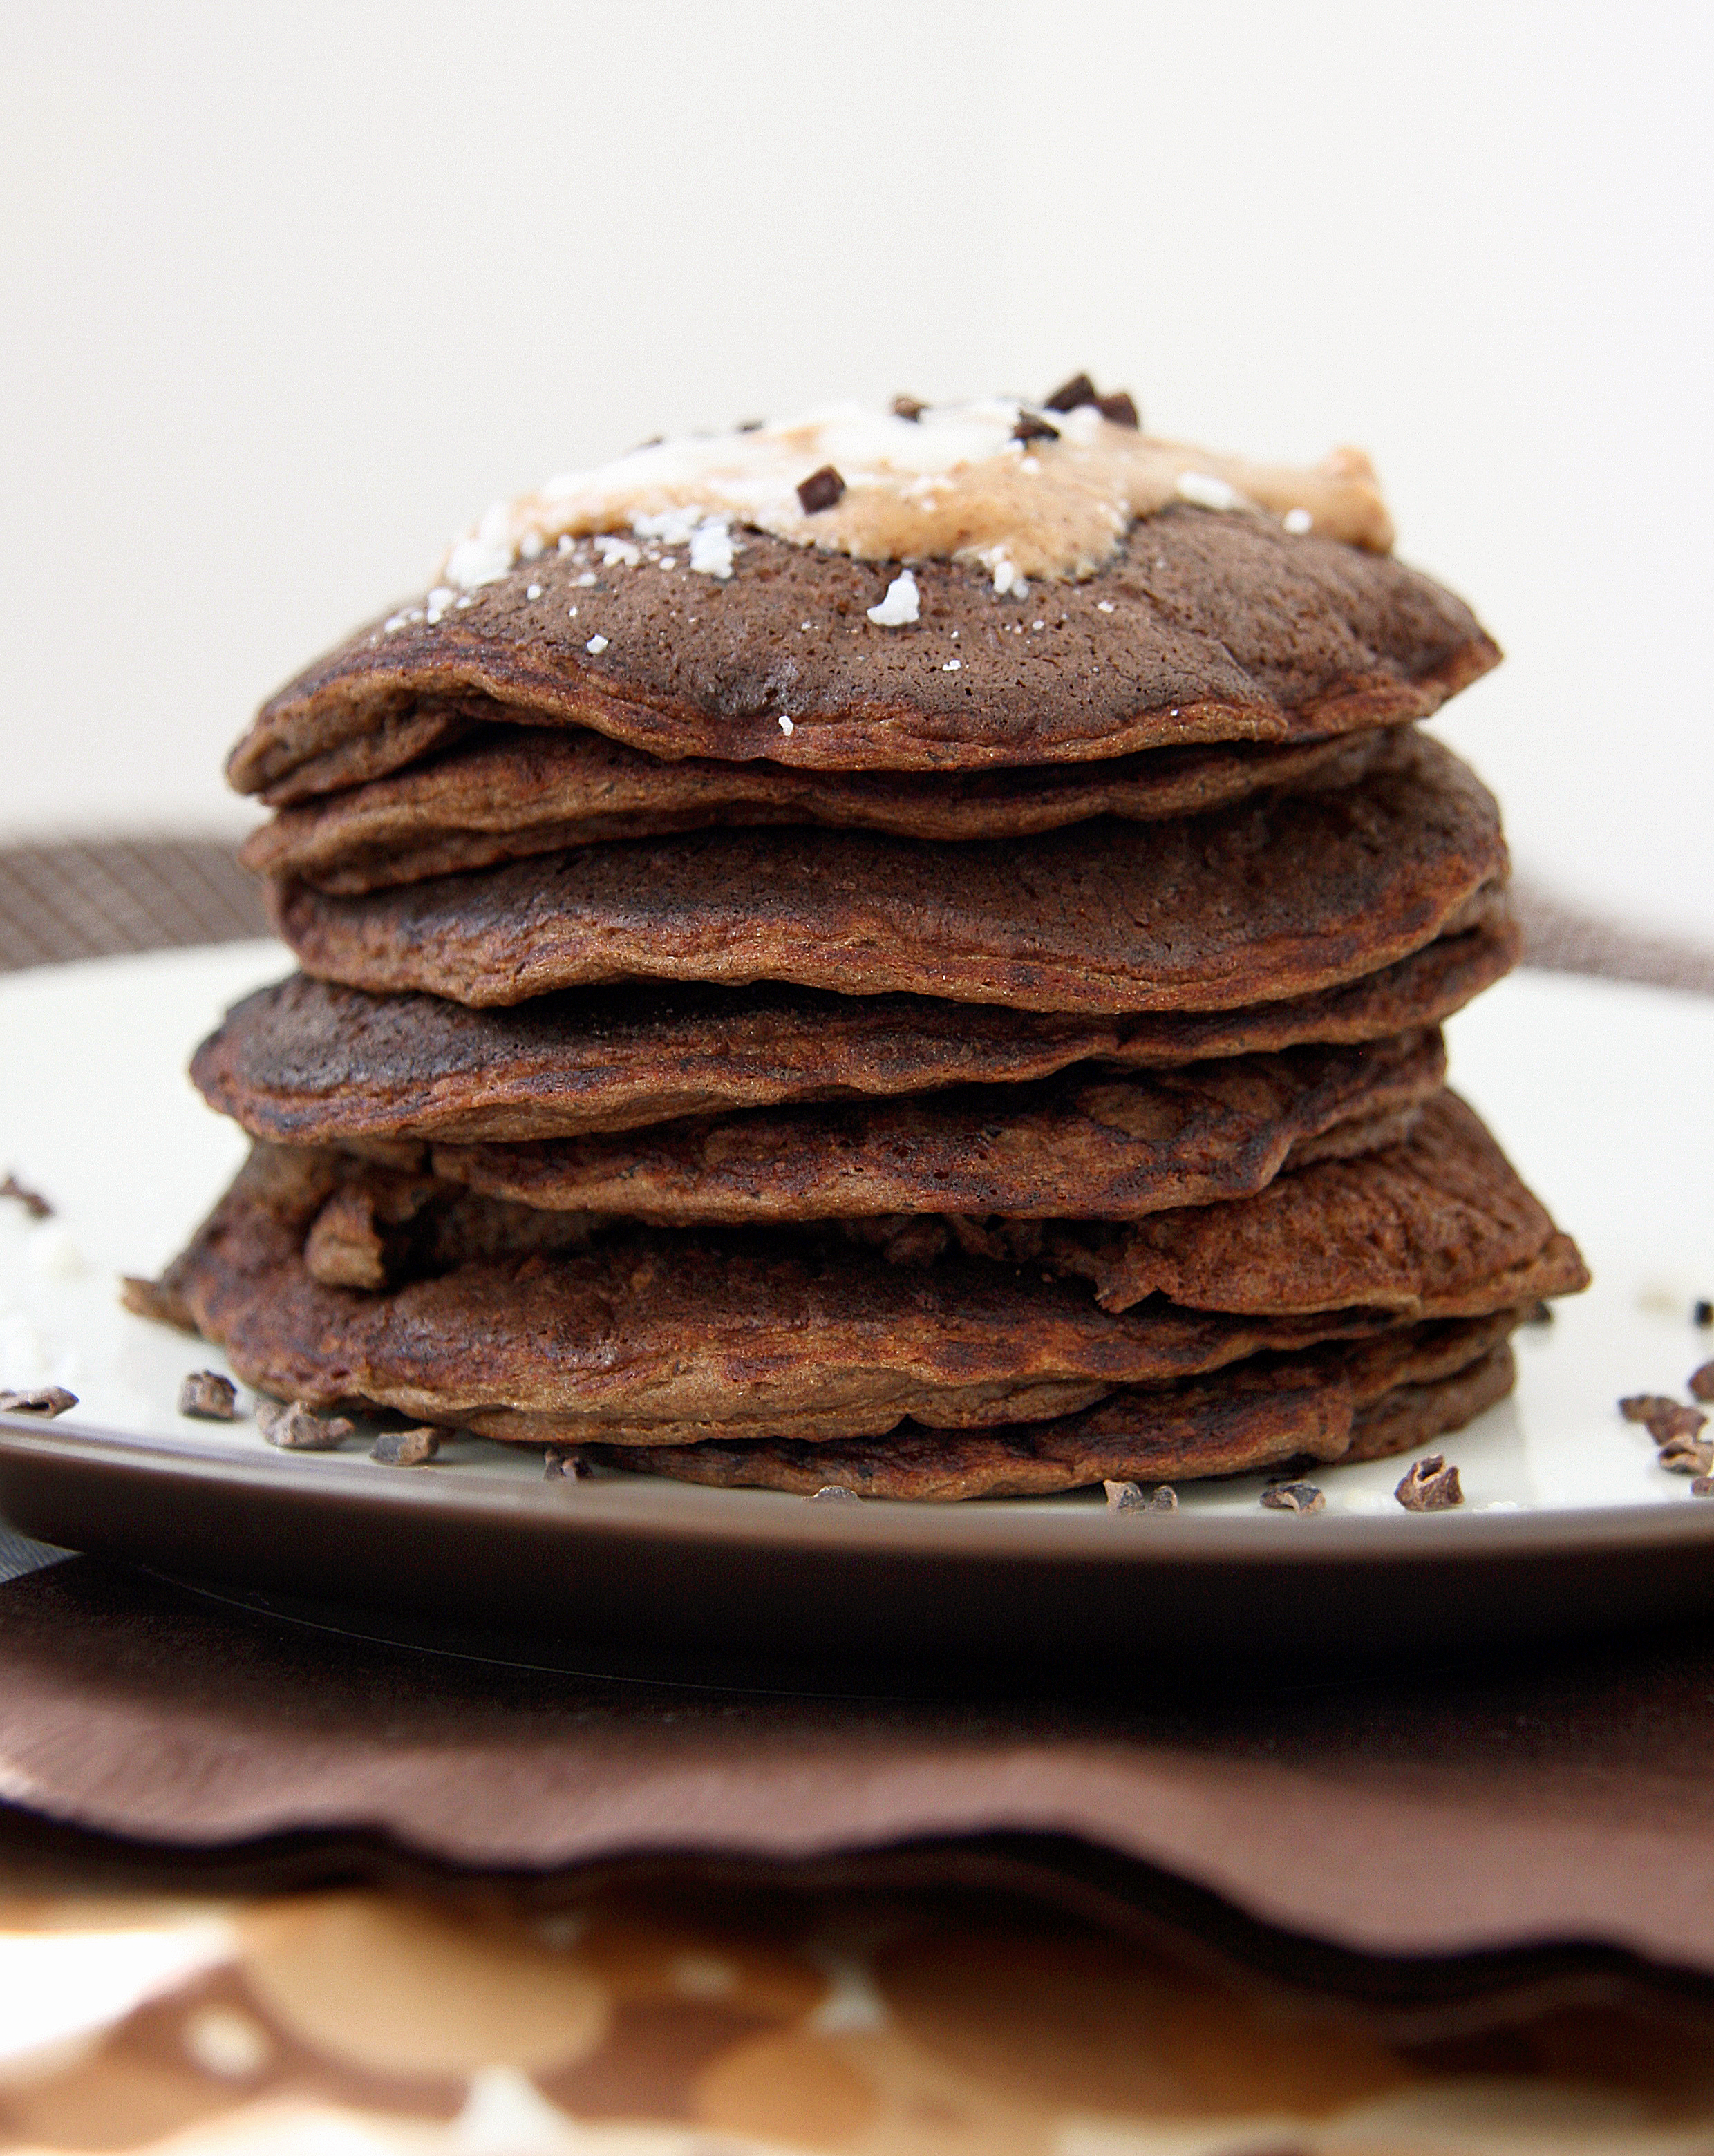 Who says you can't have chocolate for breakfast? I say go ahead ...